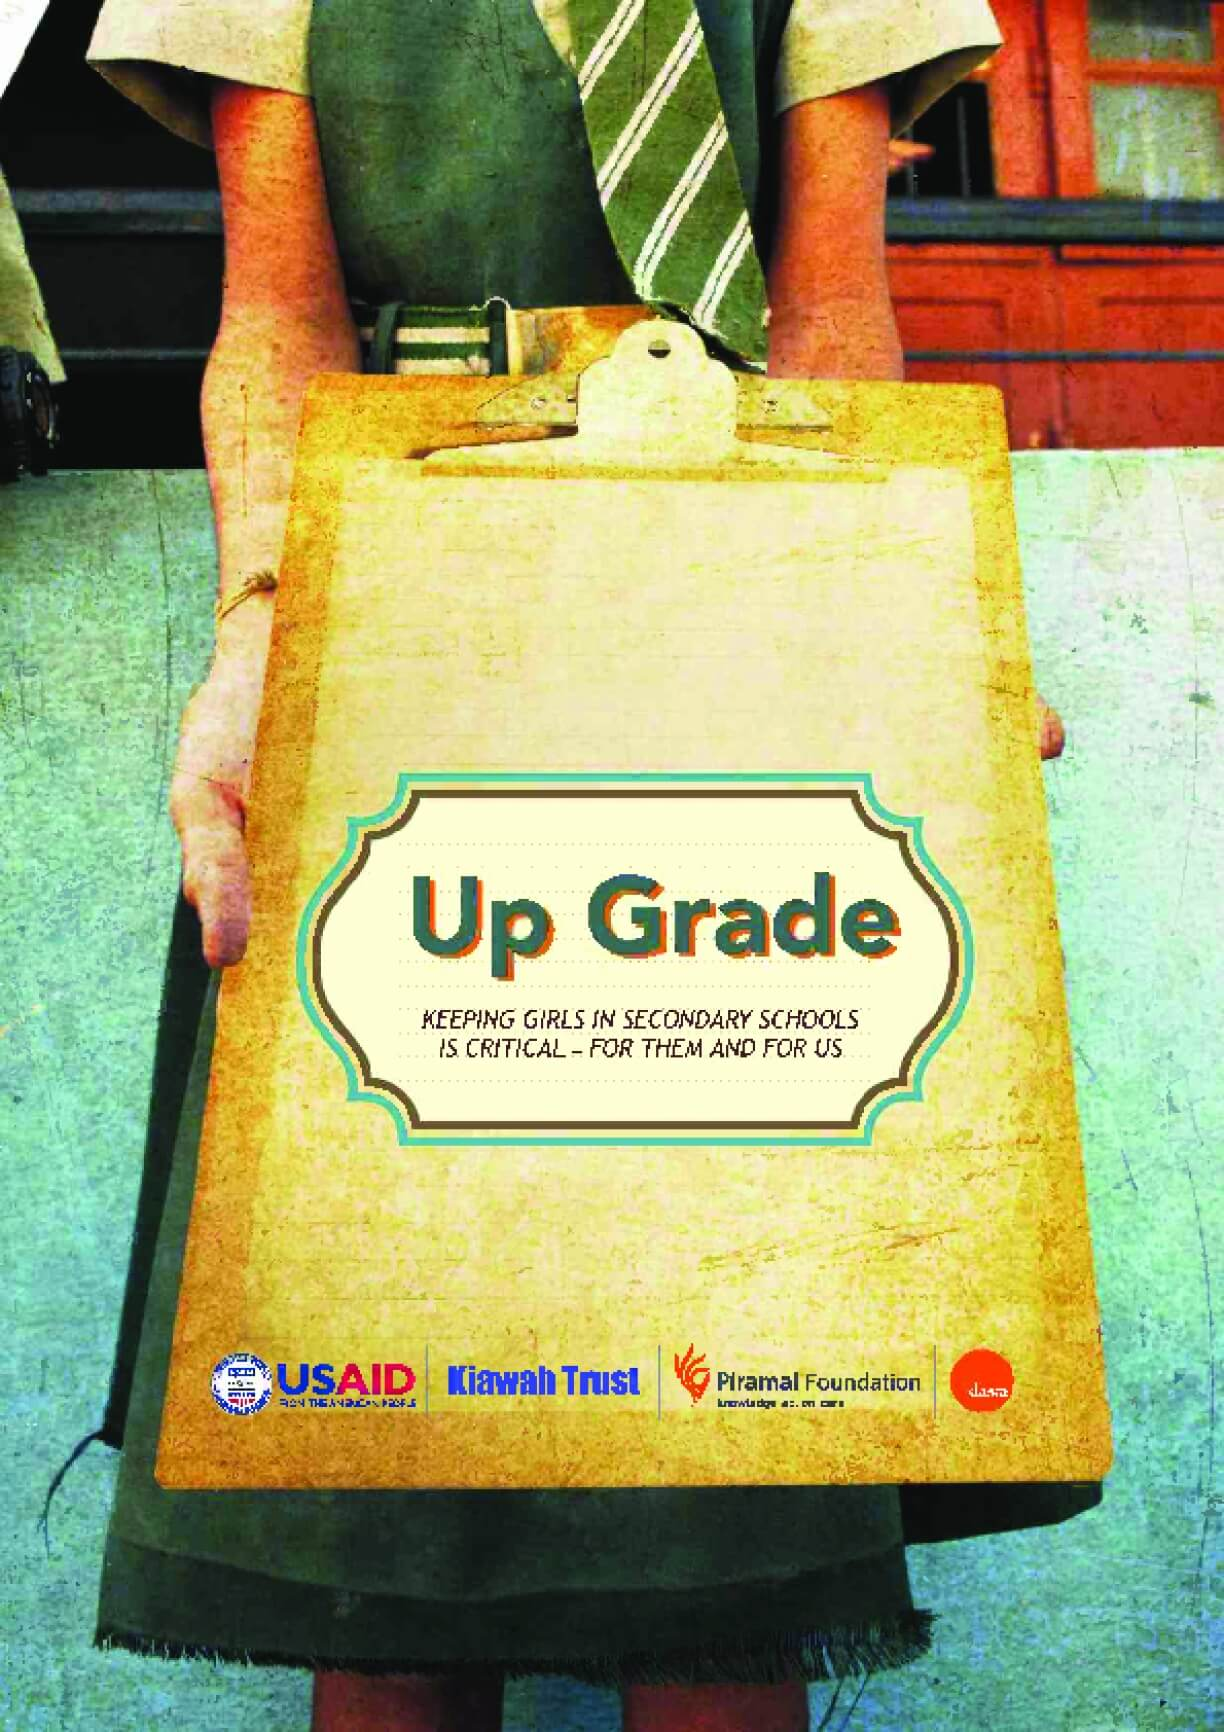 Up Grade: Keeping girls in secondary school